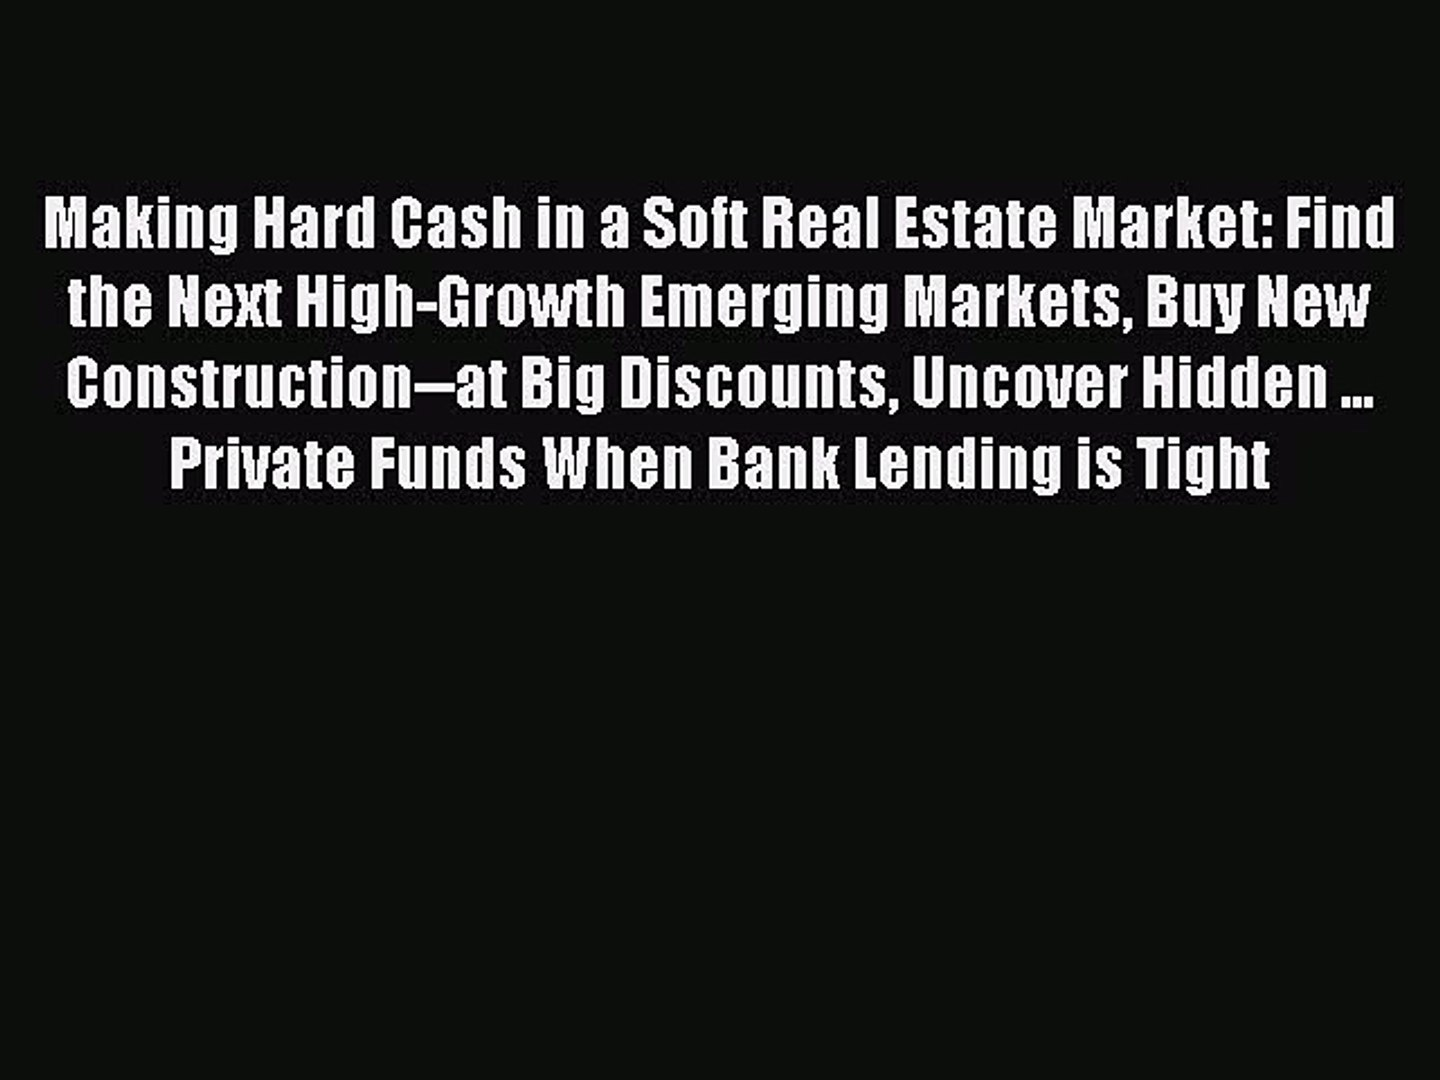 READbookMaking Hard Cash in a Soft Real Estate Market: Find the Next High-Growth Emerging Markets